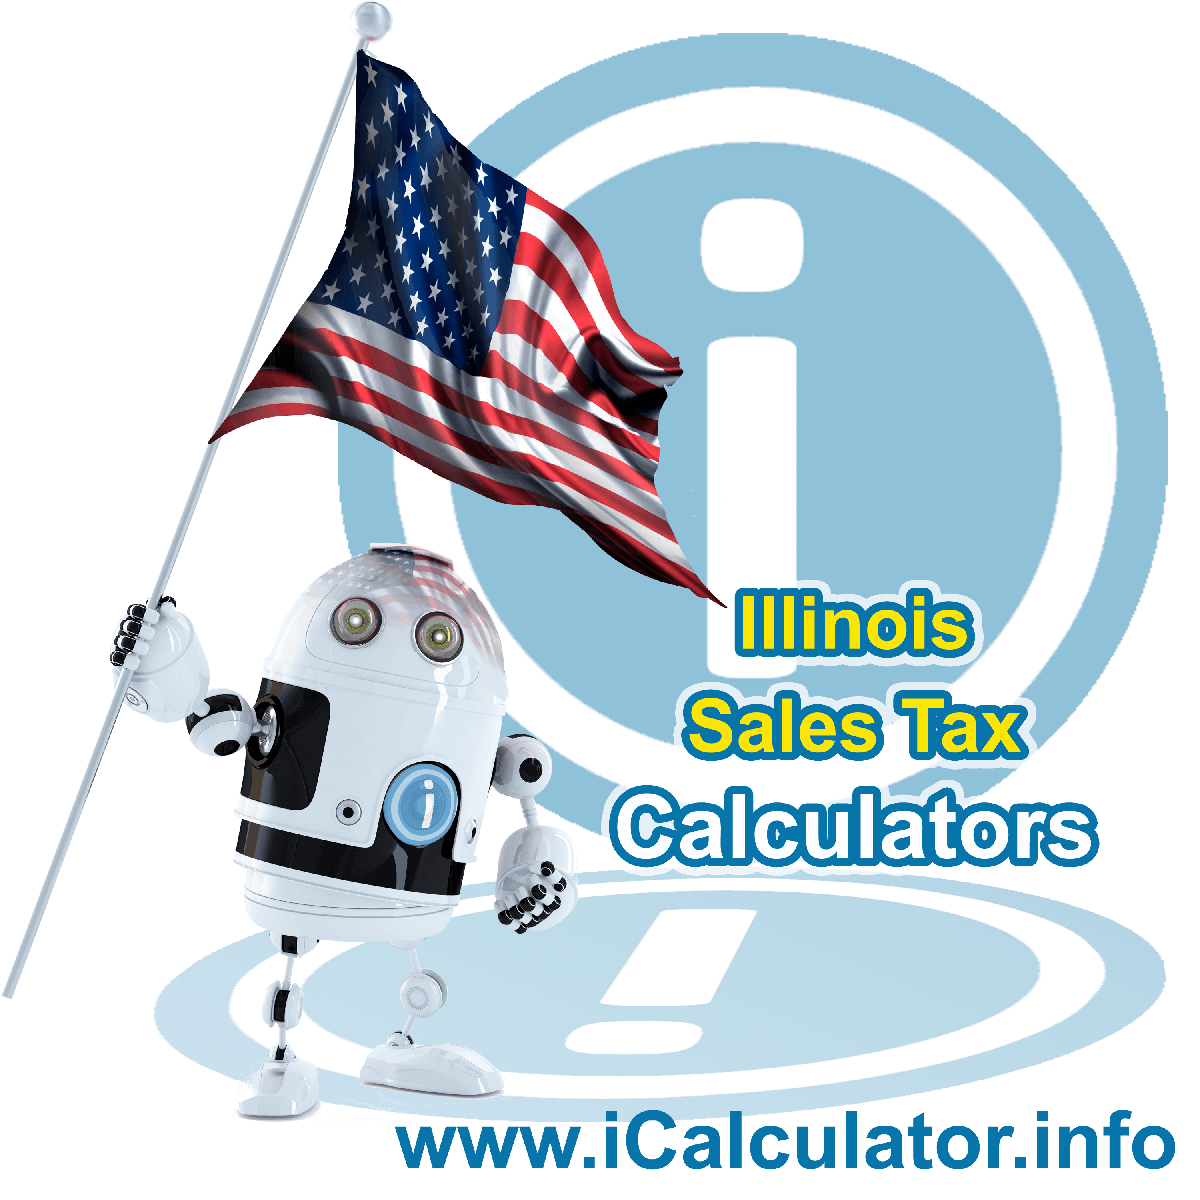 Hinsdale Sales Rates: This image illustrates a calculator robot calculating Hinsdale sales tax manually using the Hinsdale Sales Tax Formula. You can use this information to calculate Hinsdale Sales Tax manually or use the Hinsdale Sales Tax Calculator to calculate sales tax online.